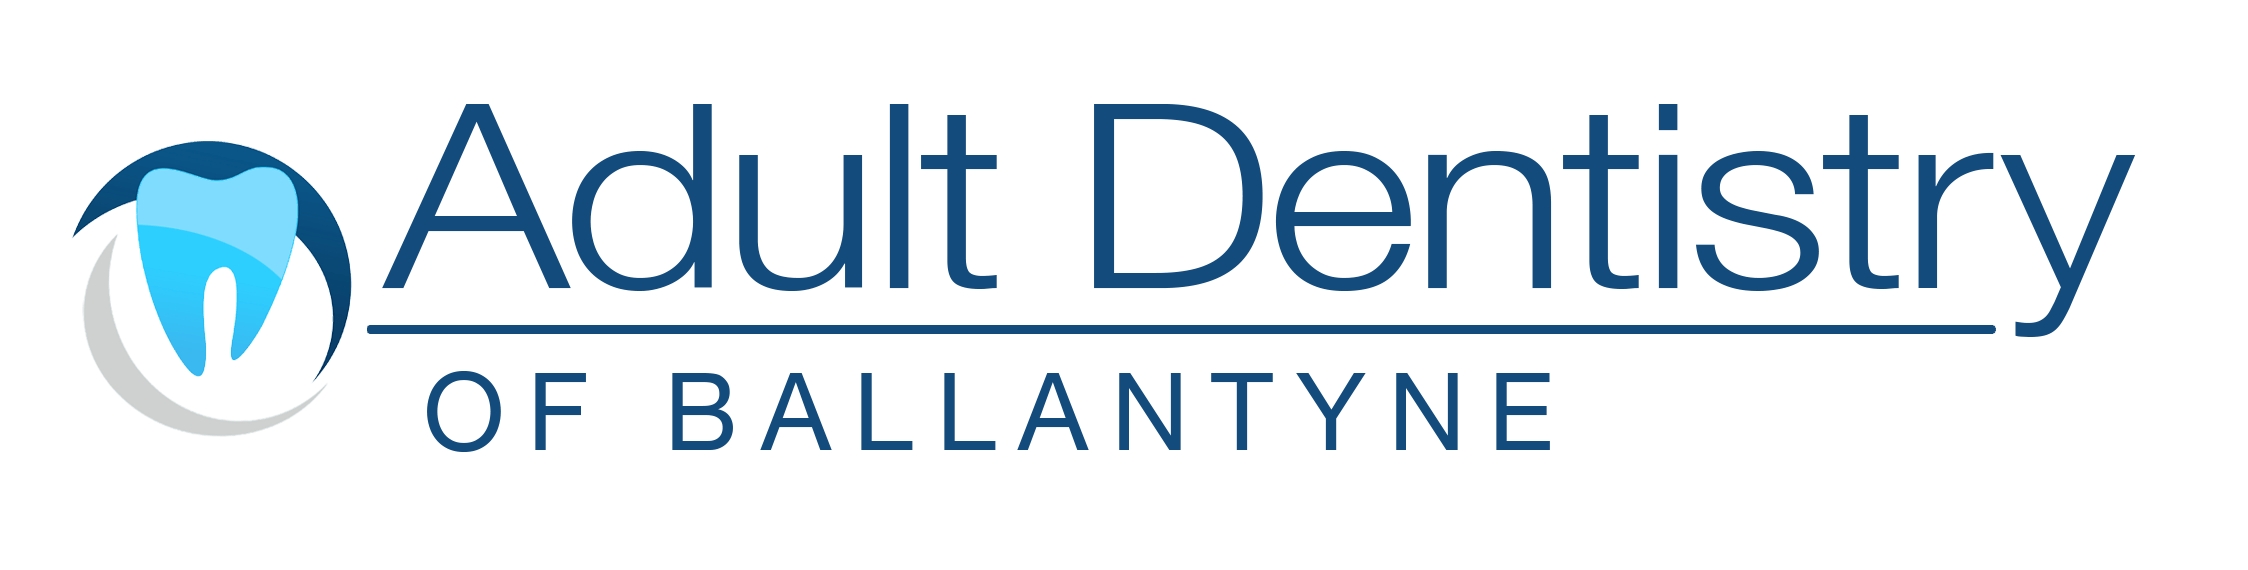 Adult Dentistry of Ballantyne Offers Sedation Dentistry Services